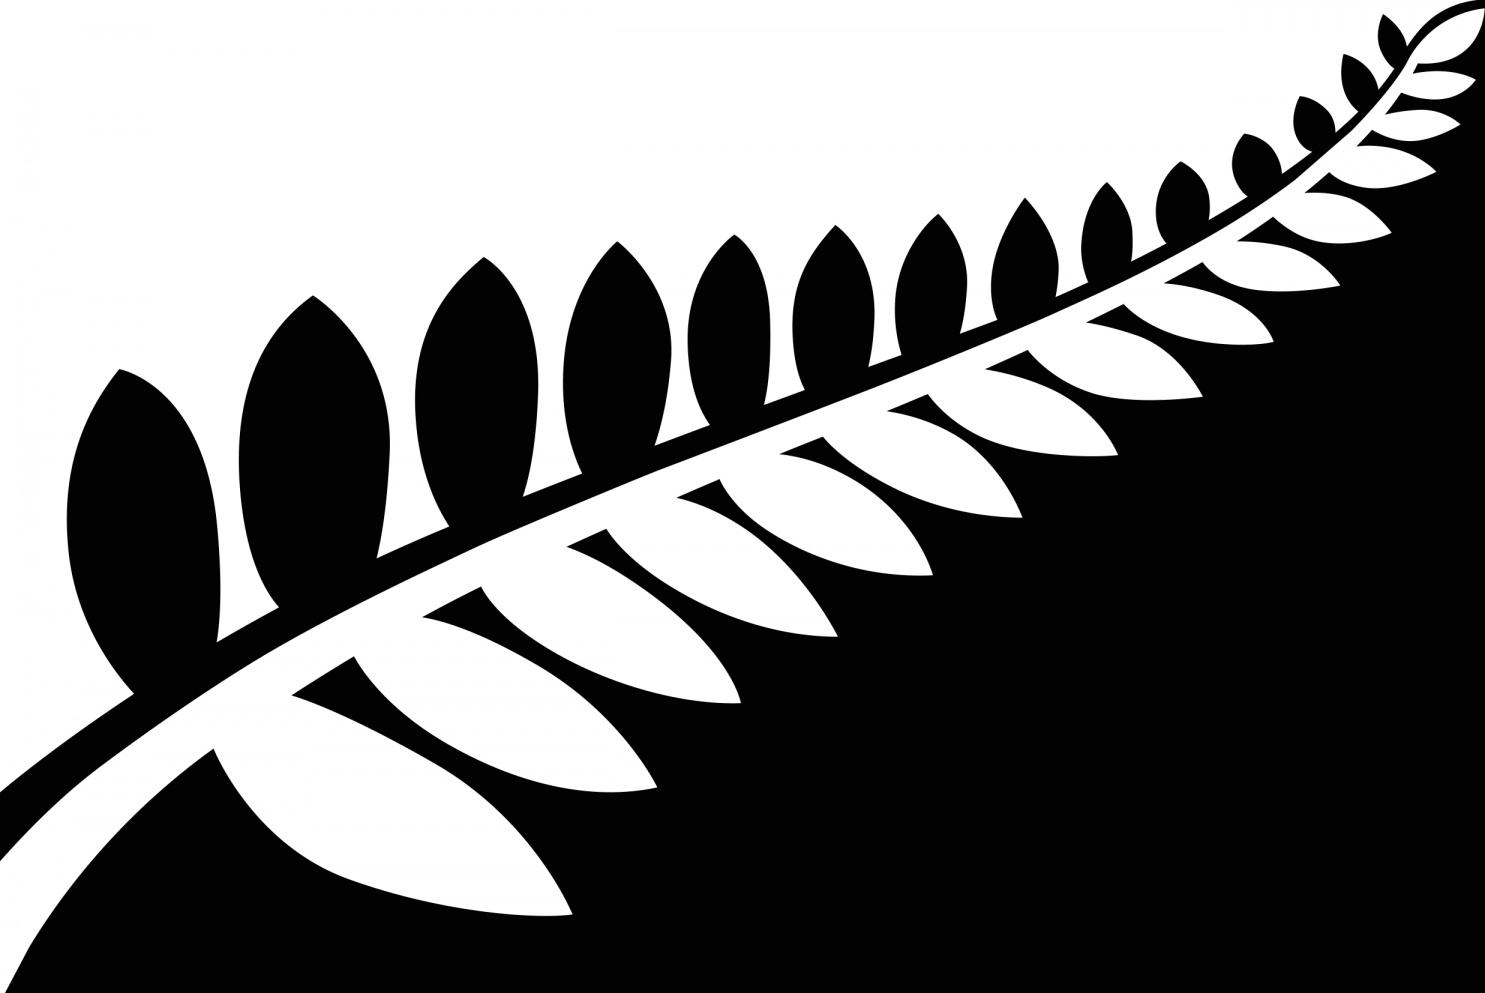 Image of the silver fern flag - black and white version.